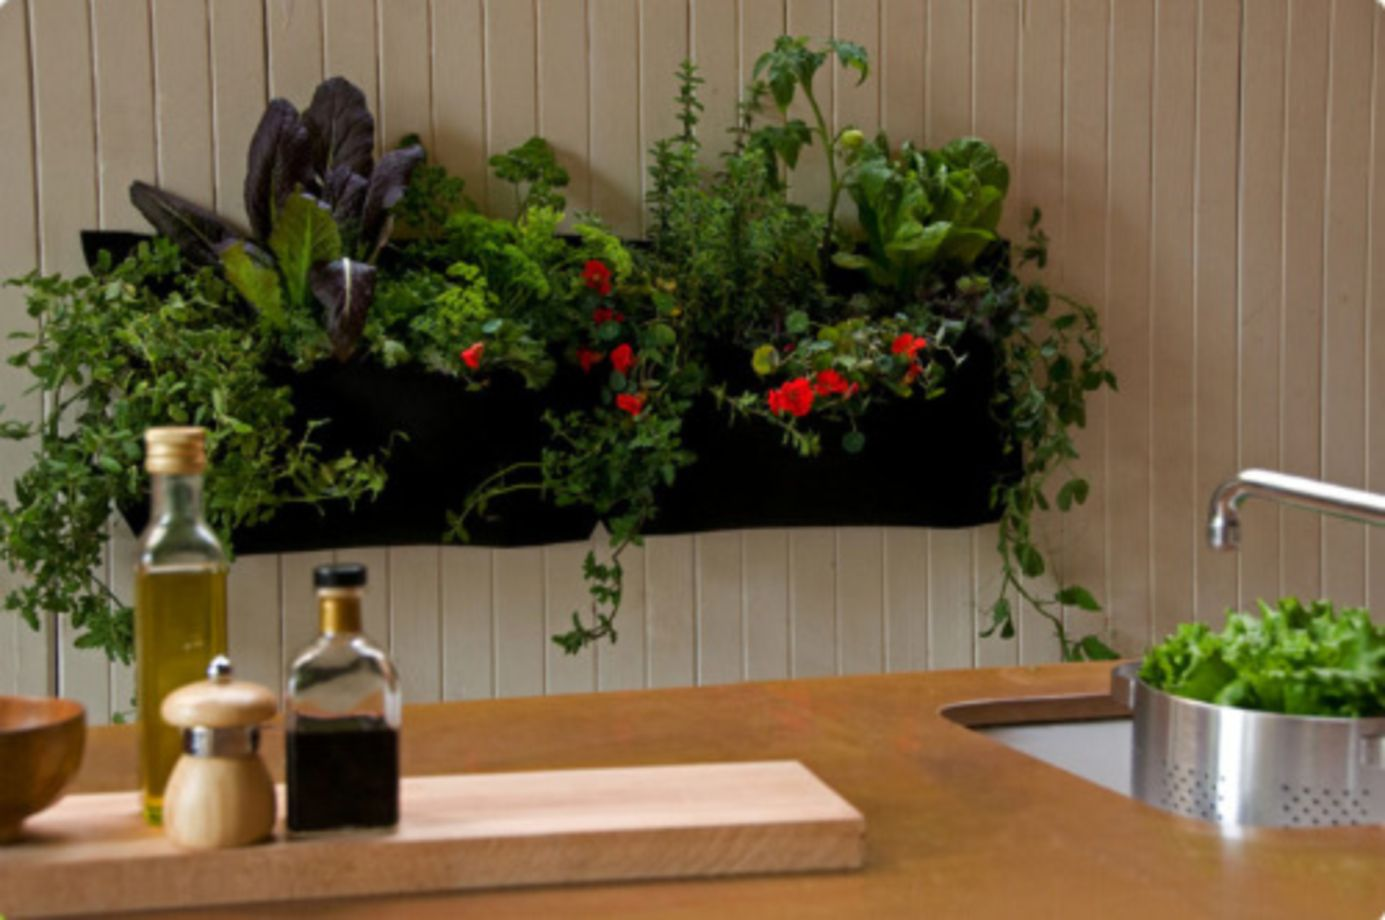 Fullsize Of Indoor Wall Garden Ideas